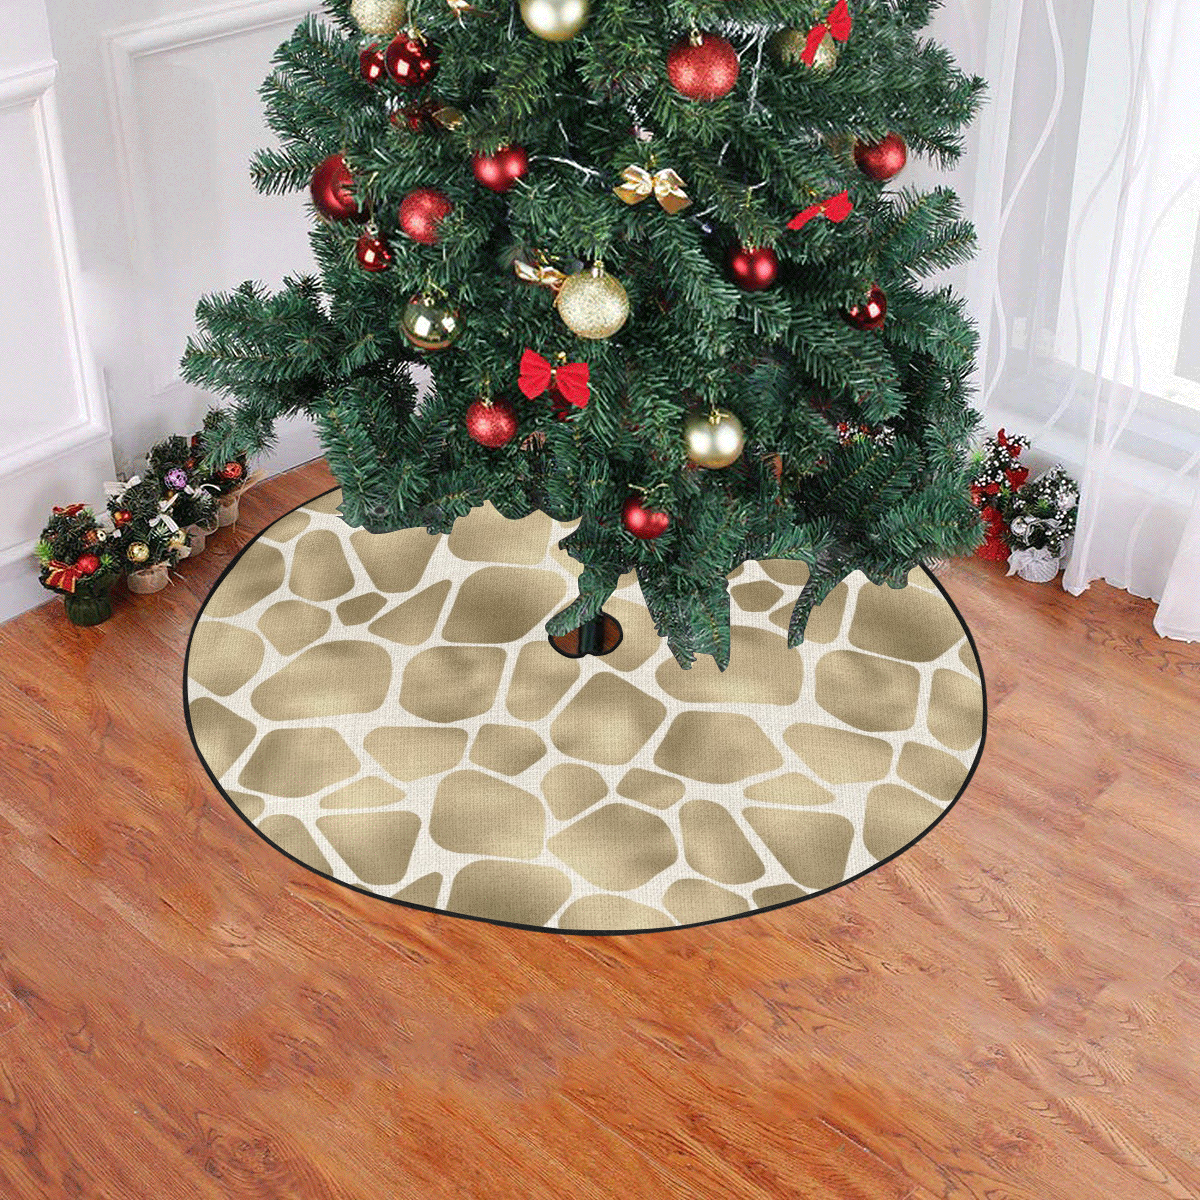 "Linen Giraffe Print Christmas Tree Skirt 47"" x 47"""